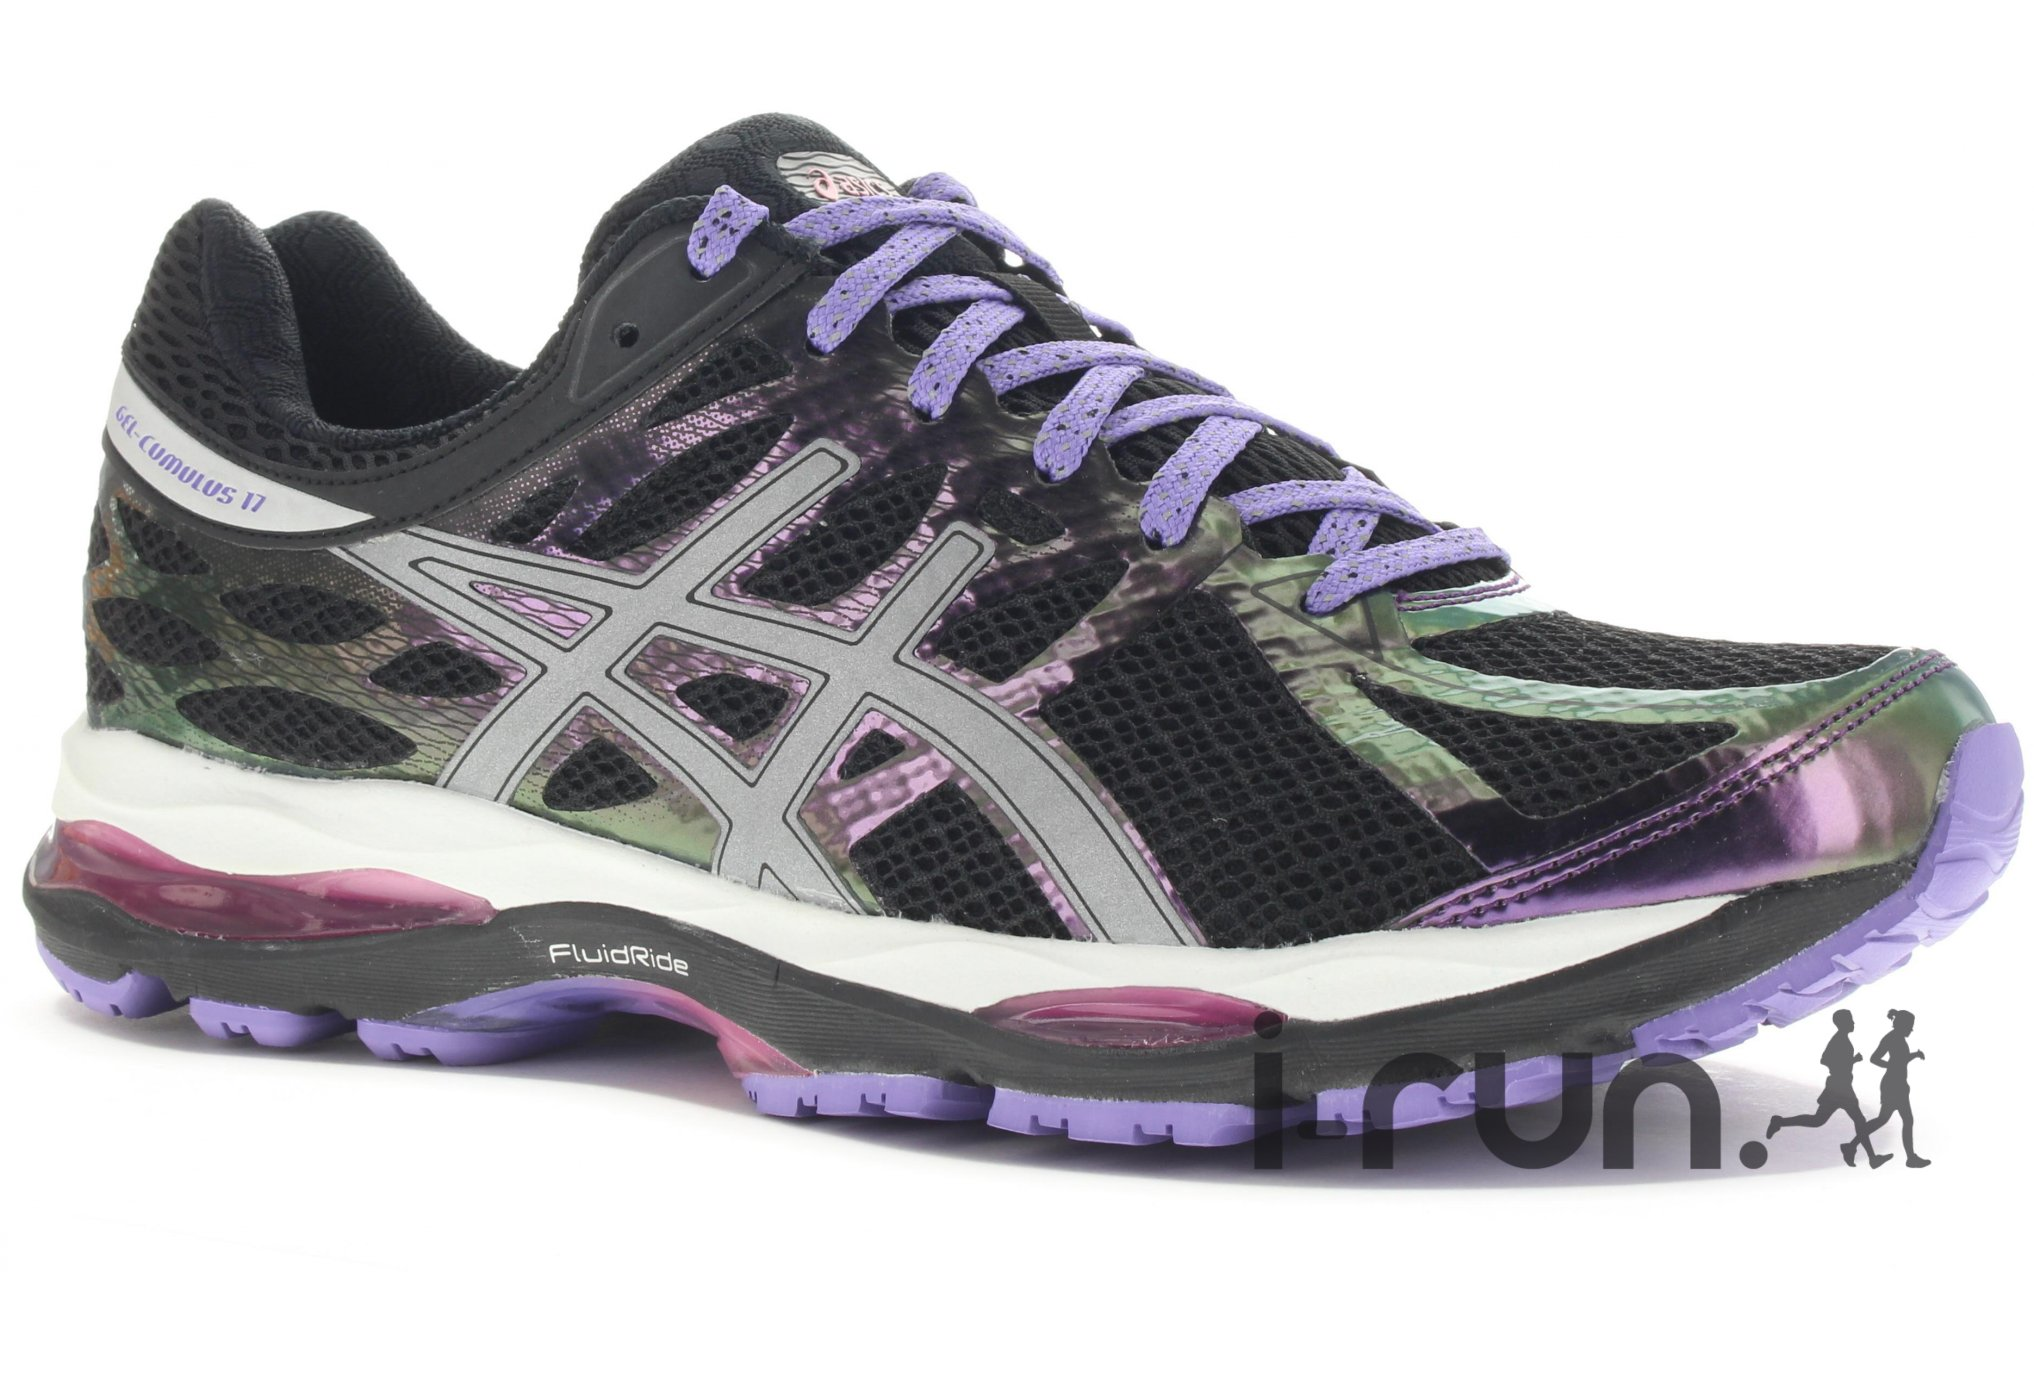 Acquista asics gel cumulus 4 2015 - OFF58% sconti 9fefd729441